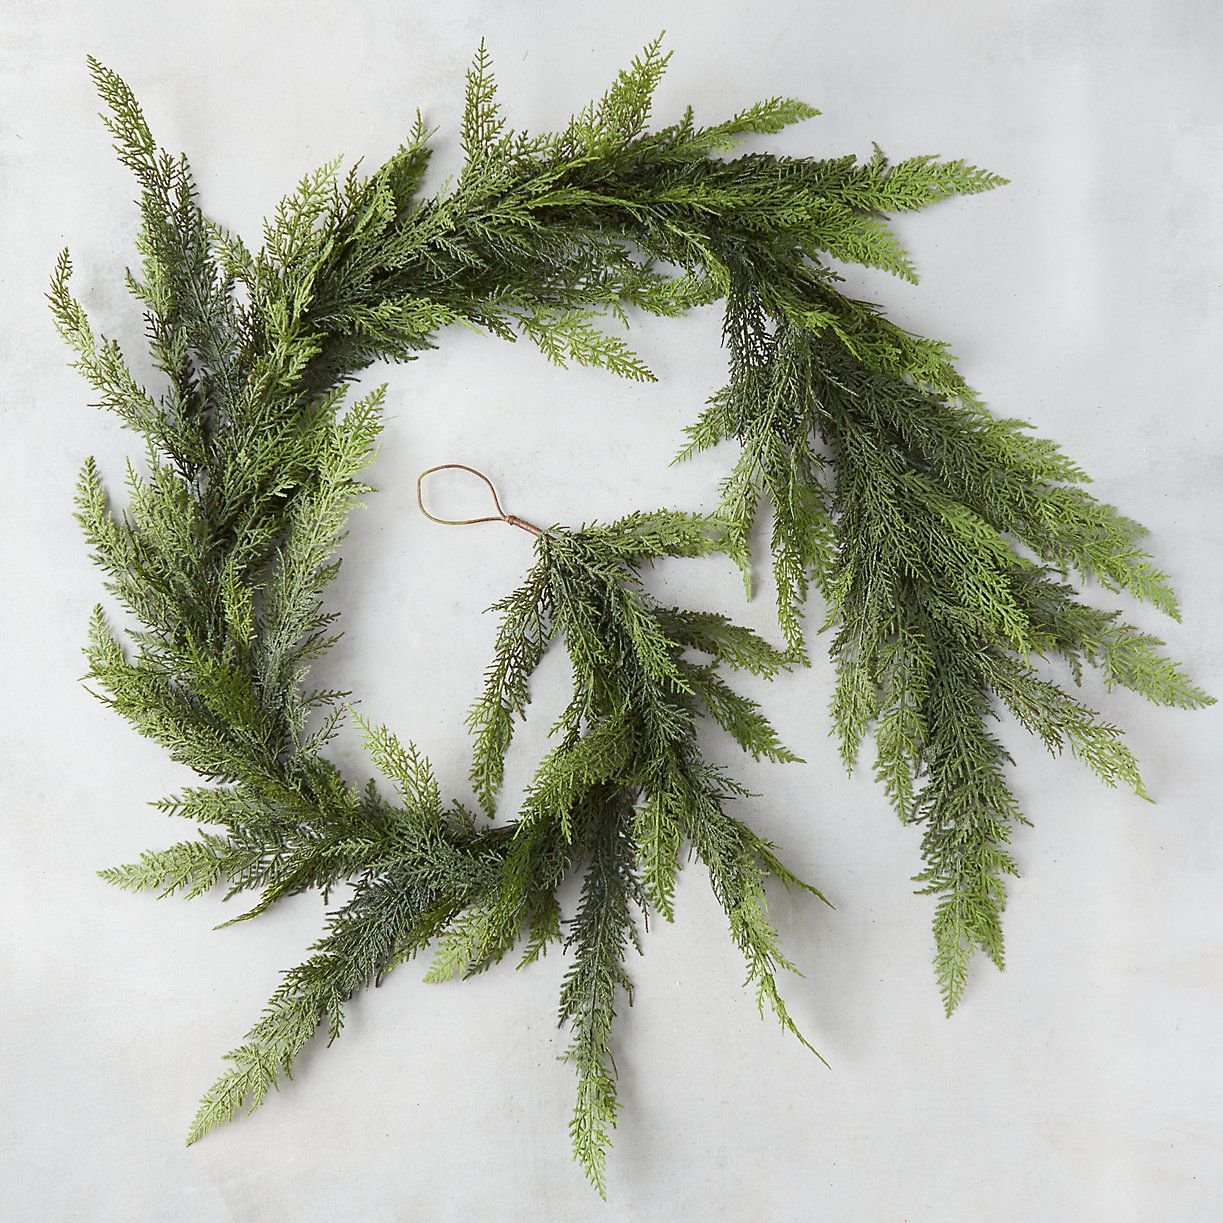 Handcrafted Farmhouse Winter Garland-Winter Table Garland-Hand Wrapped Ornament-Blue Evergreen Winter Garland-Faux Fireplace Garland-Lights